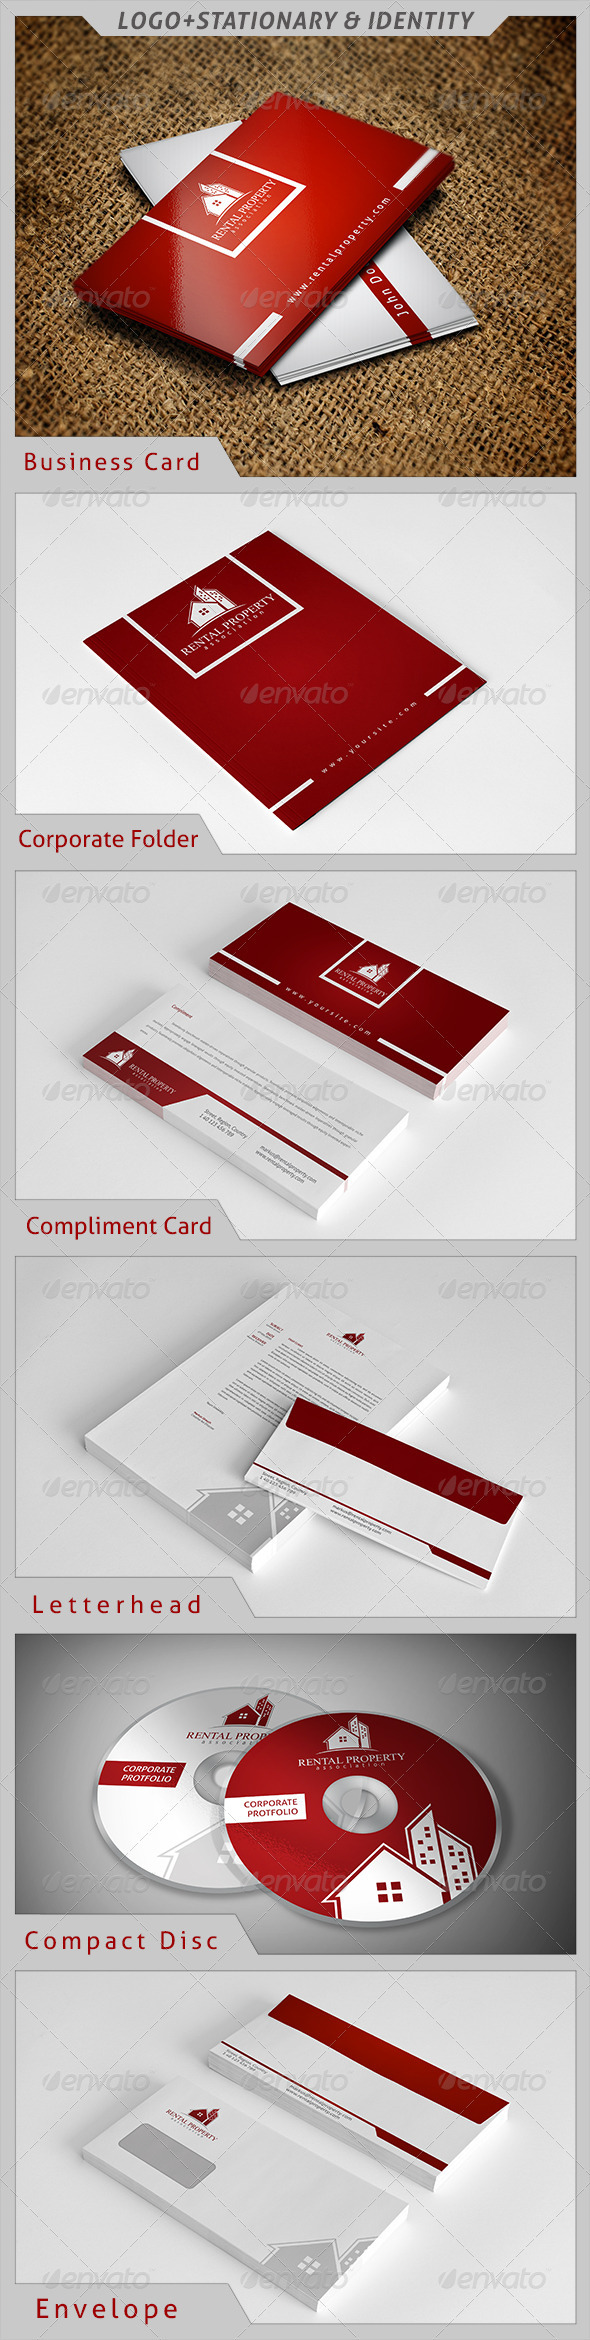 GraphicRiver Rental Property Corporate Identity 3796511